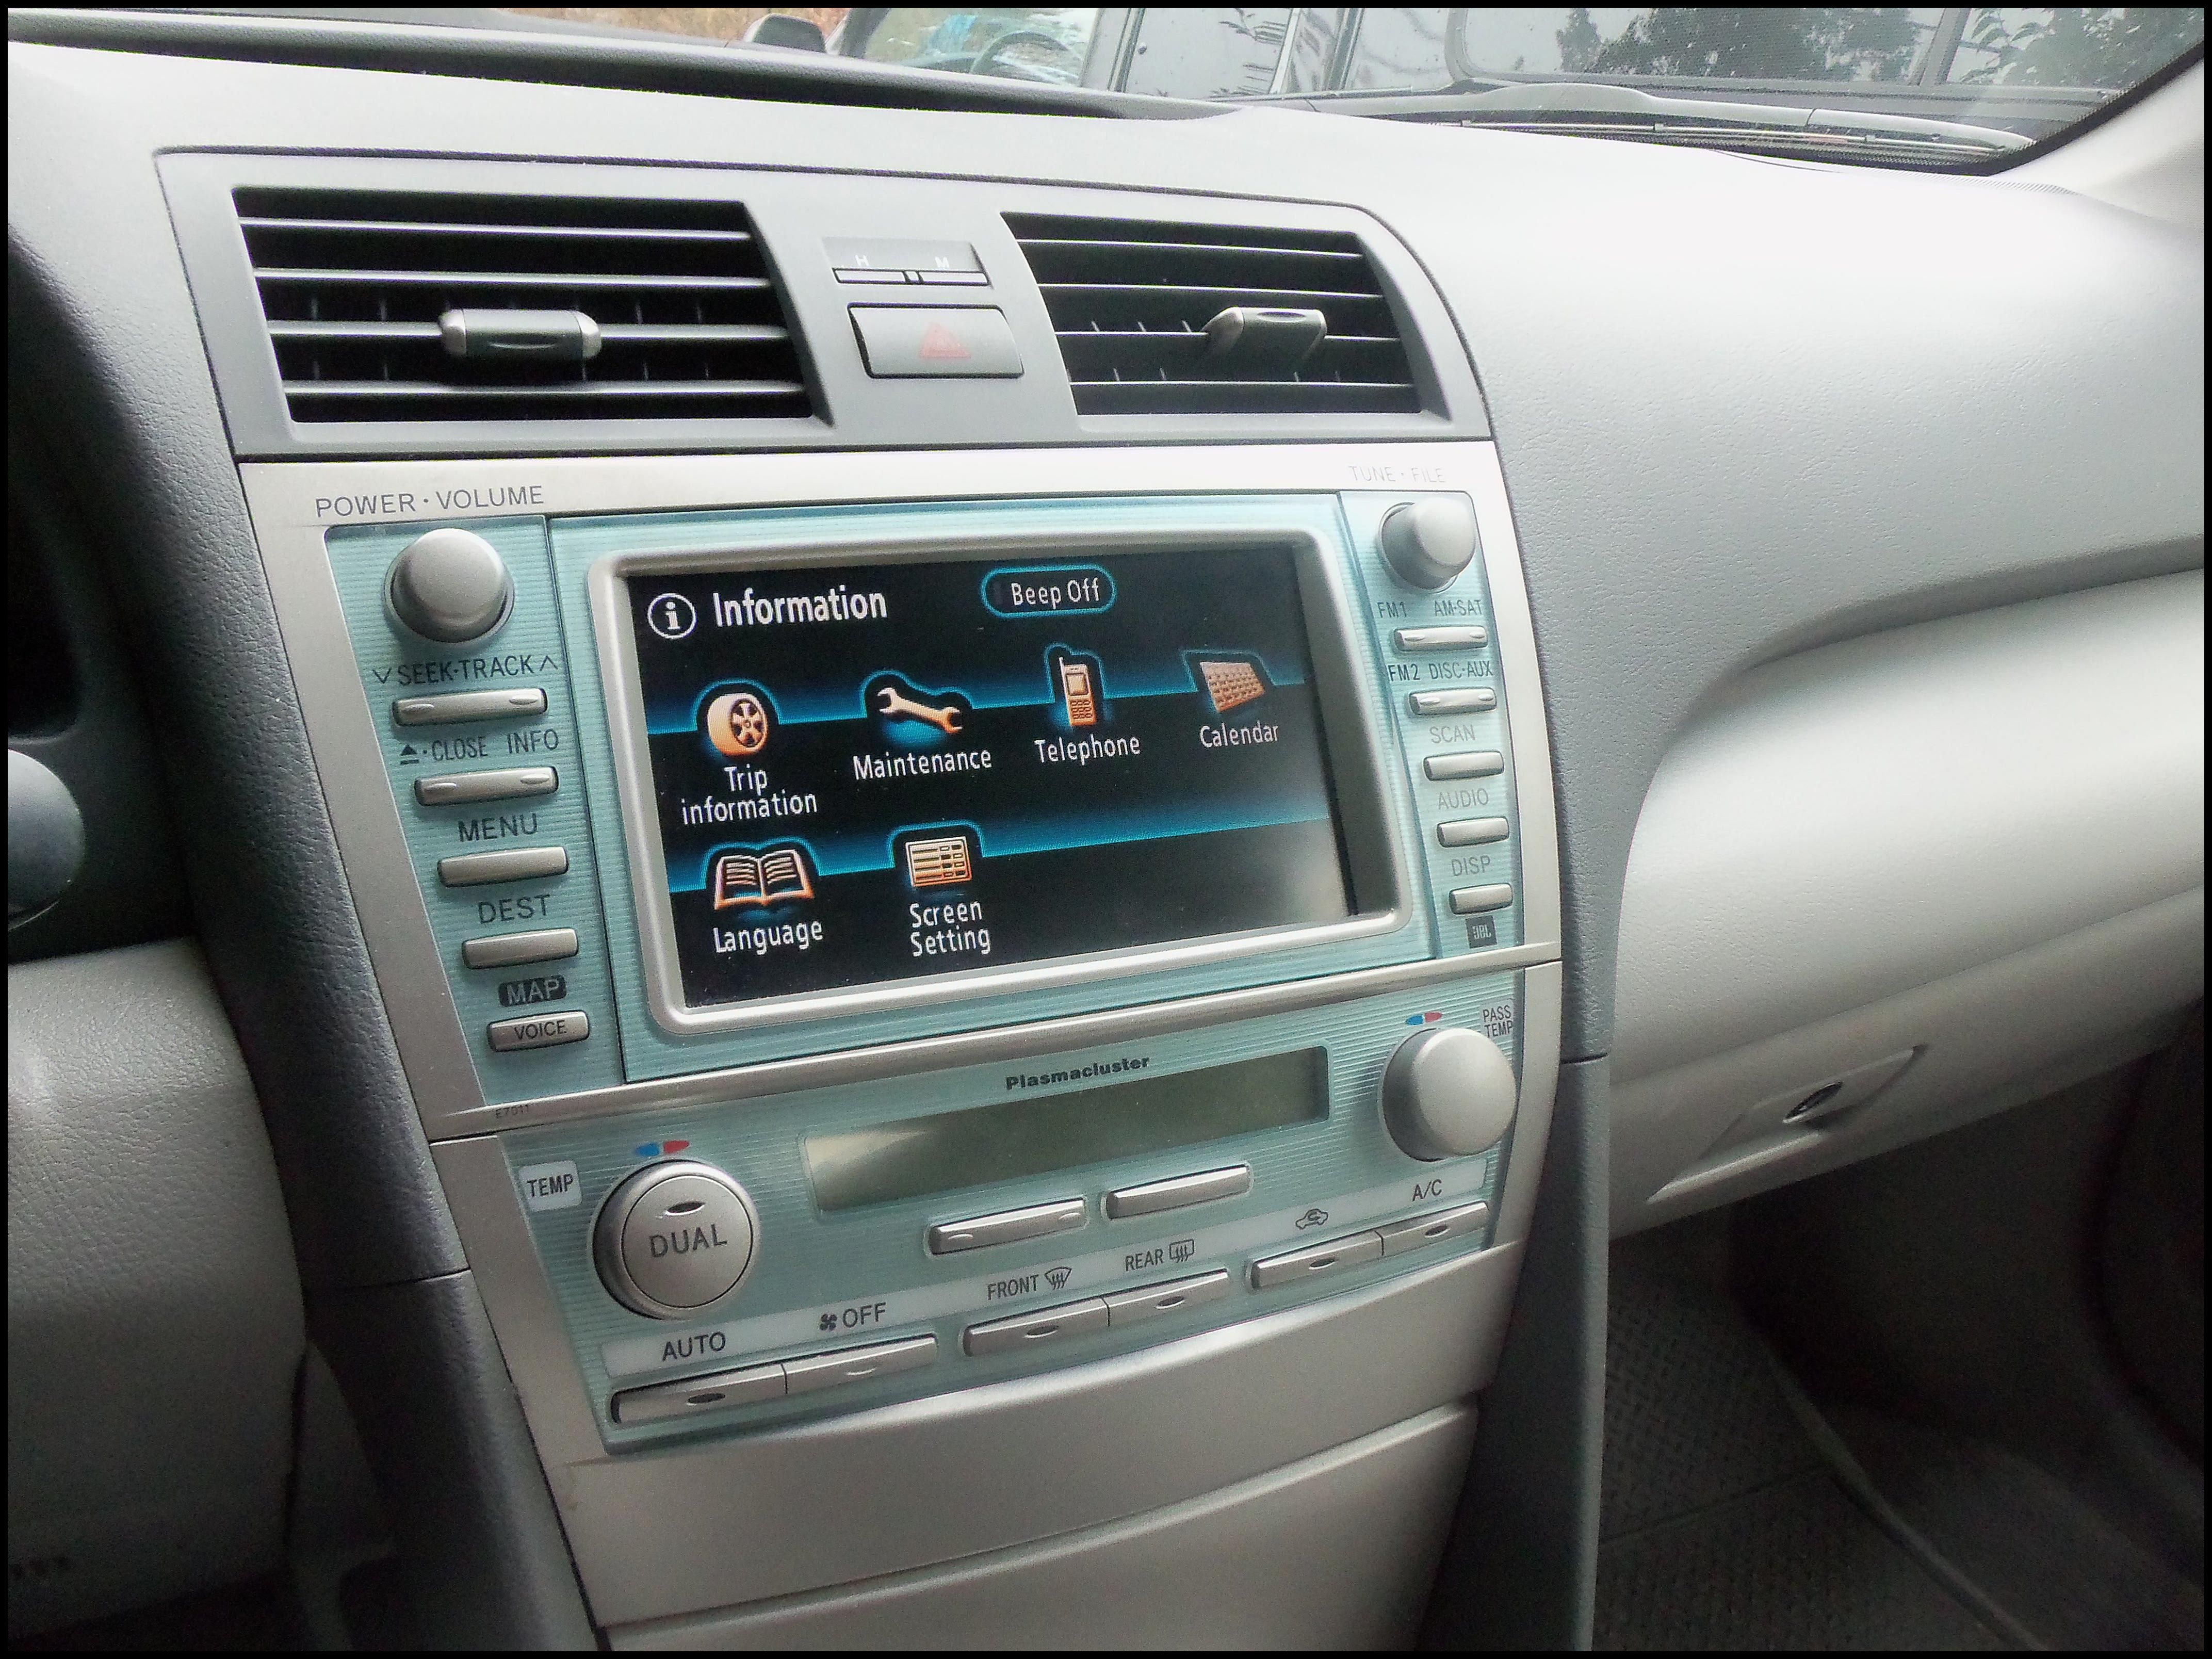 Toyota Camry infotainment settings